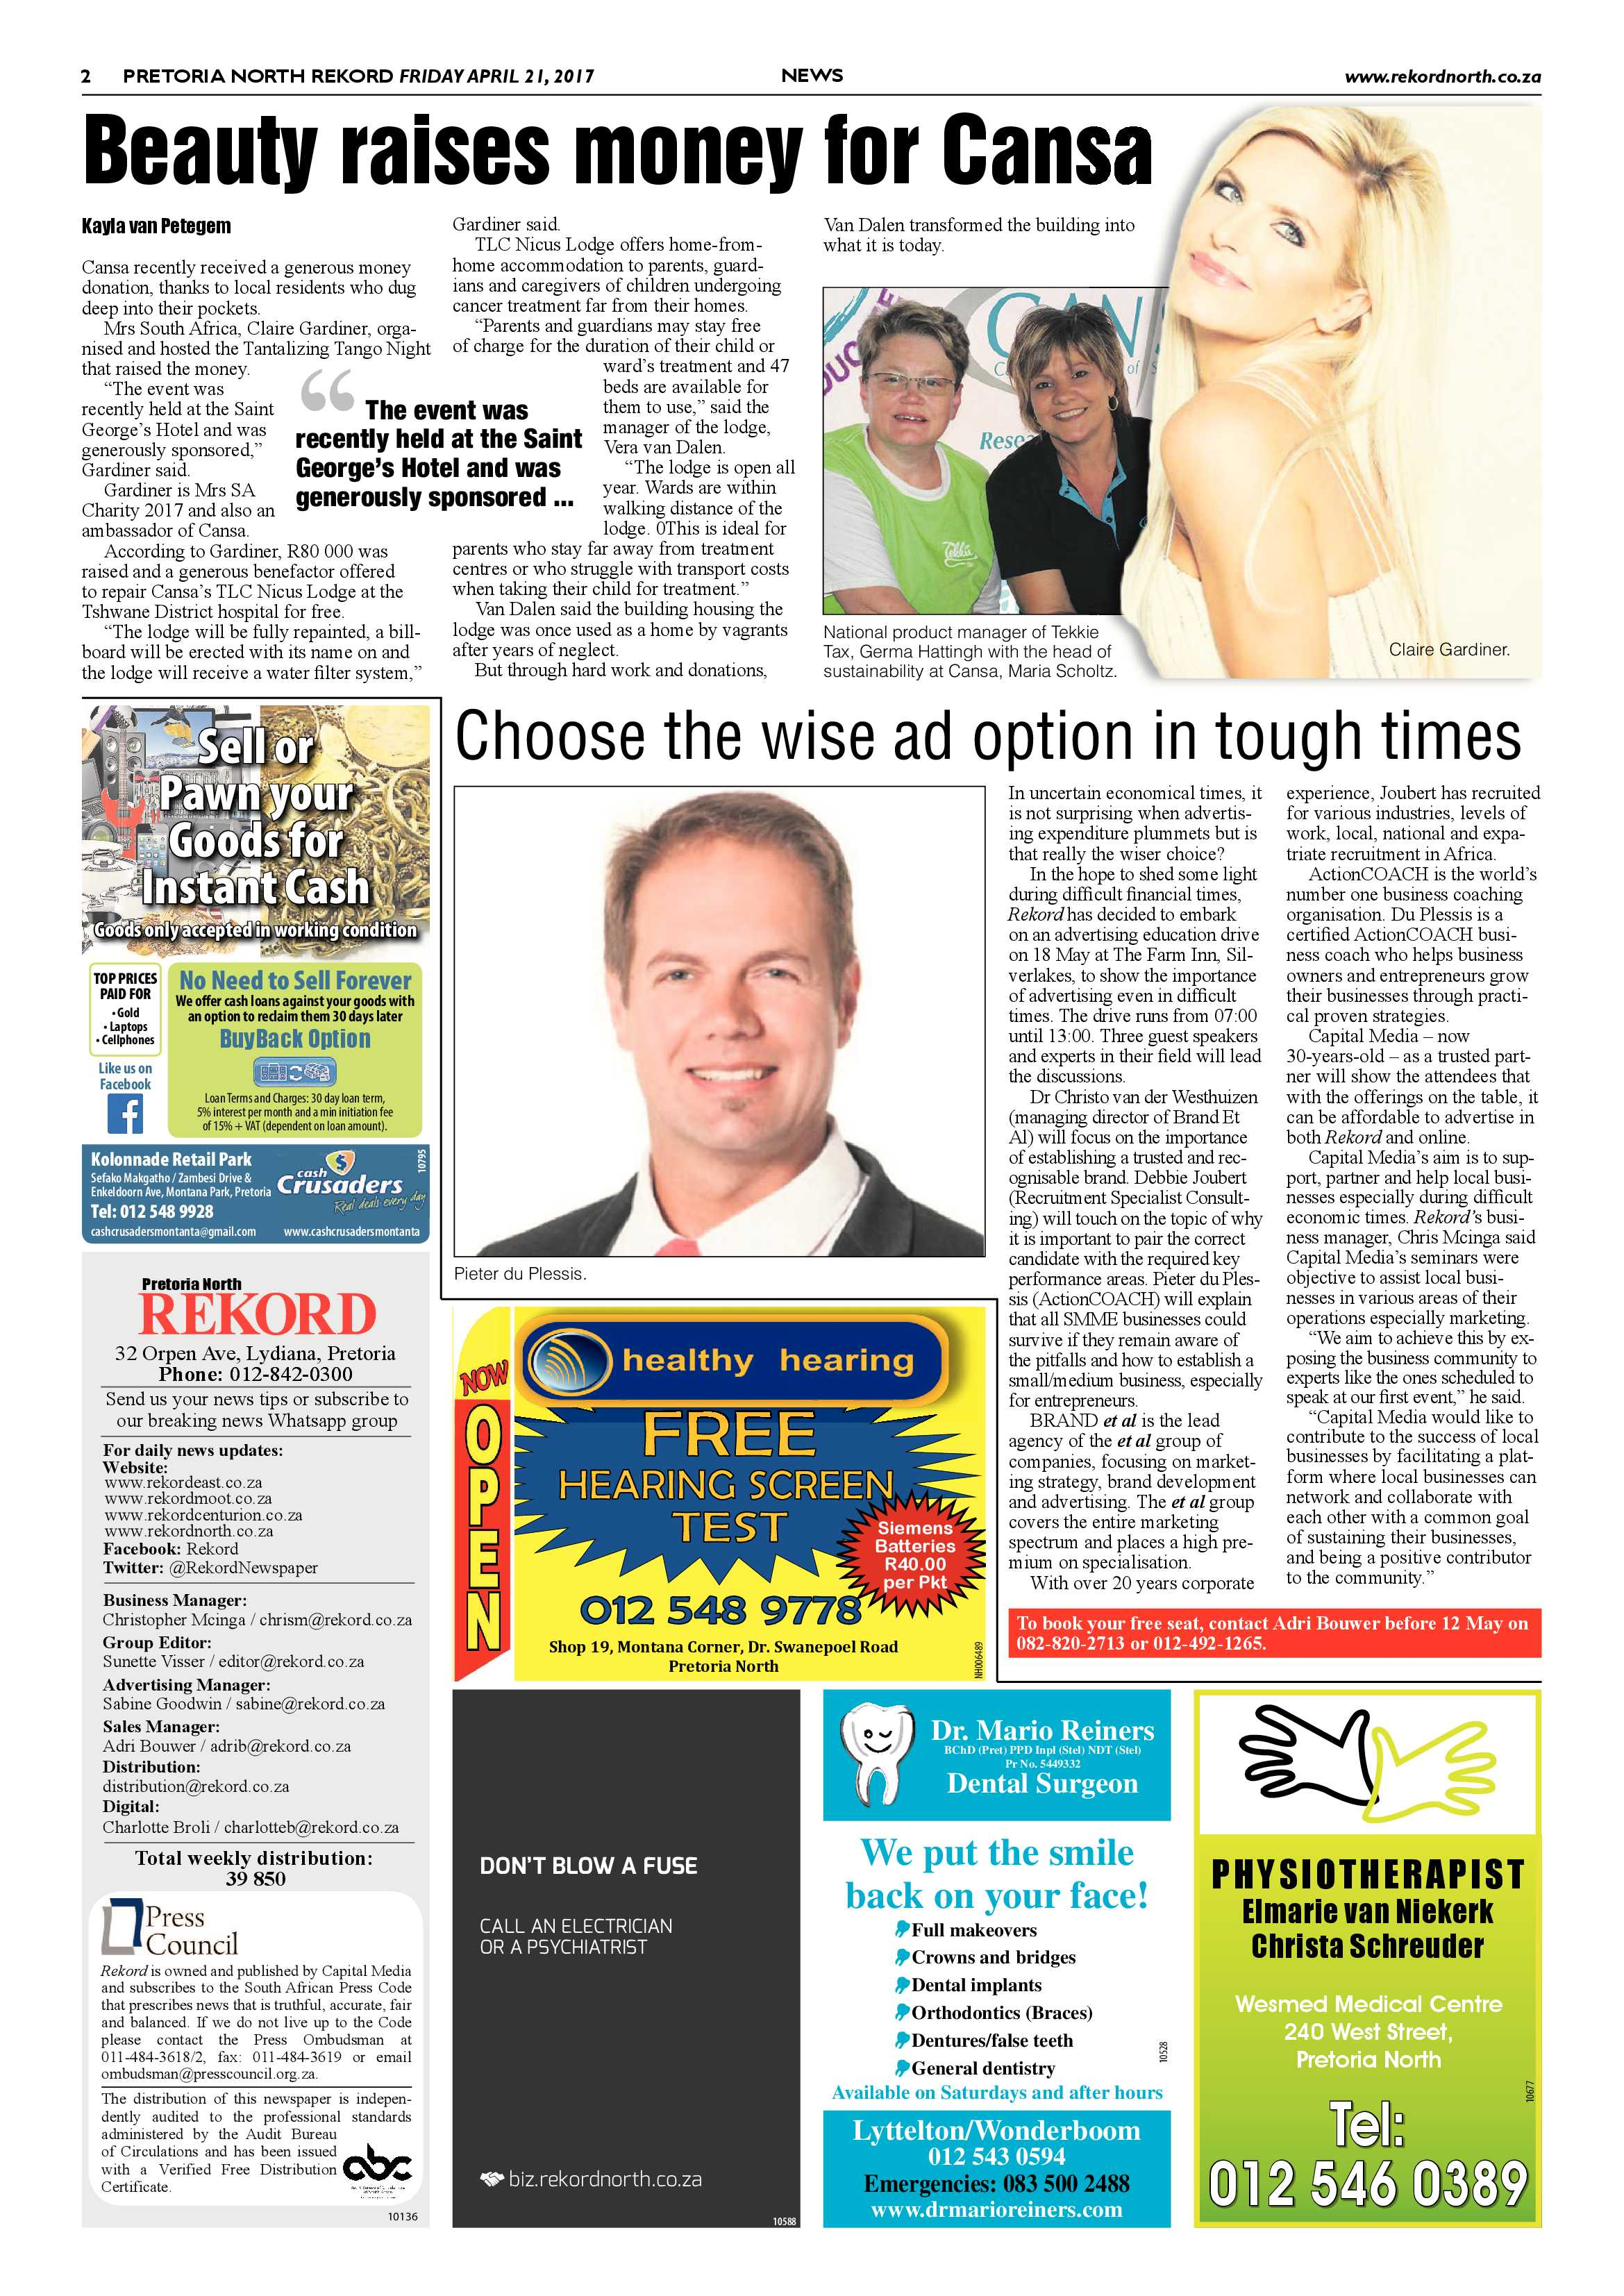 rekord-north-21-april-2017-epapers-page-2